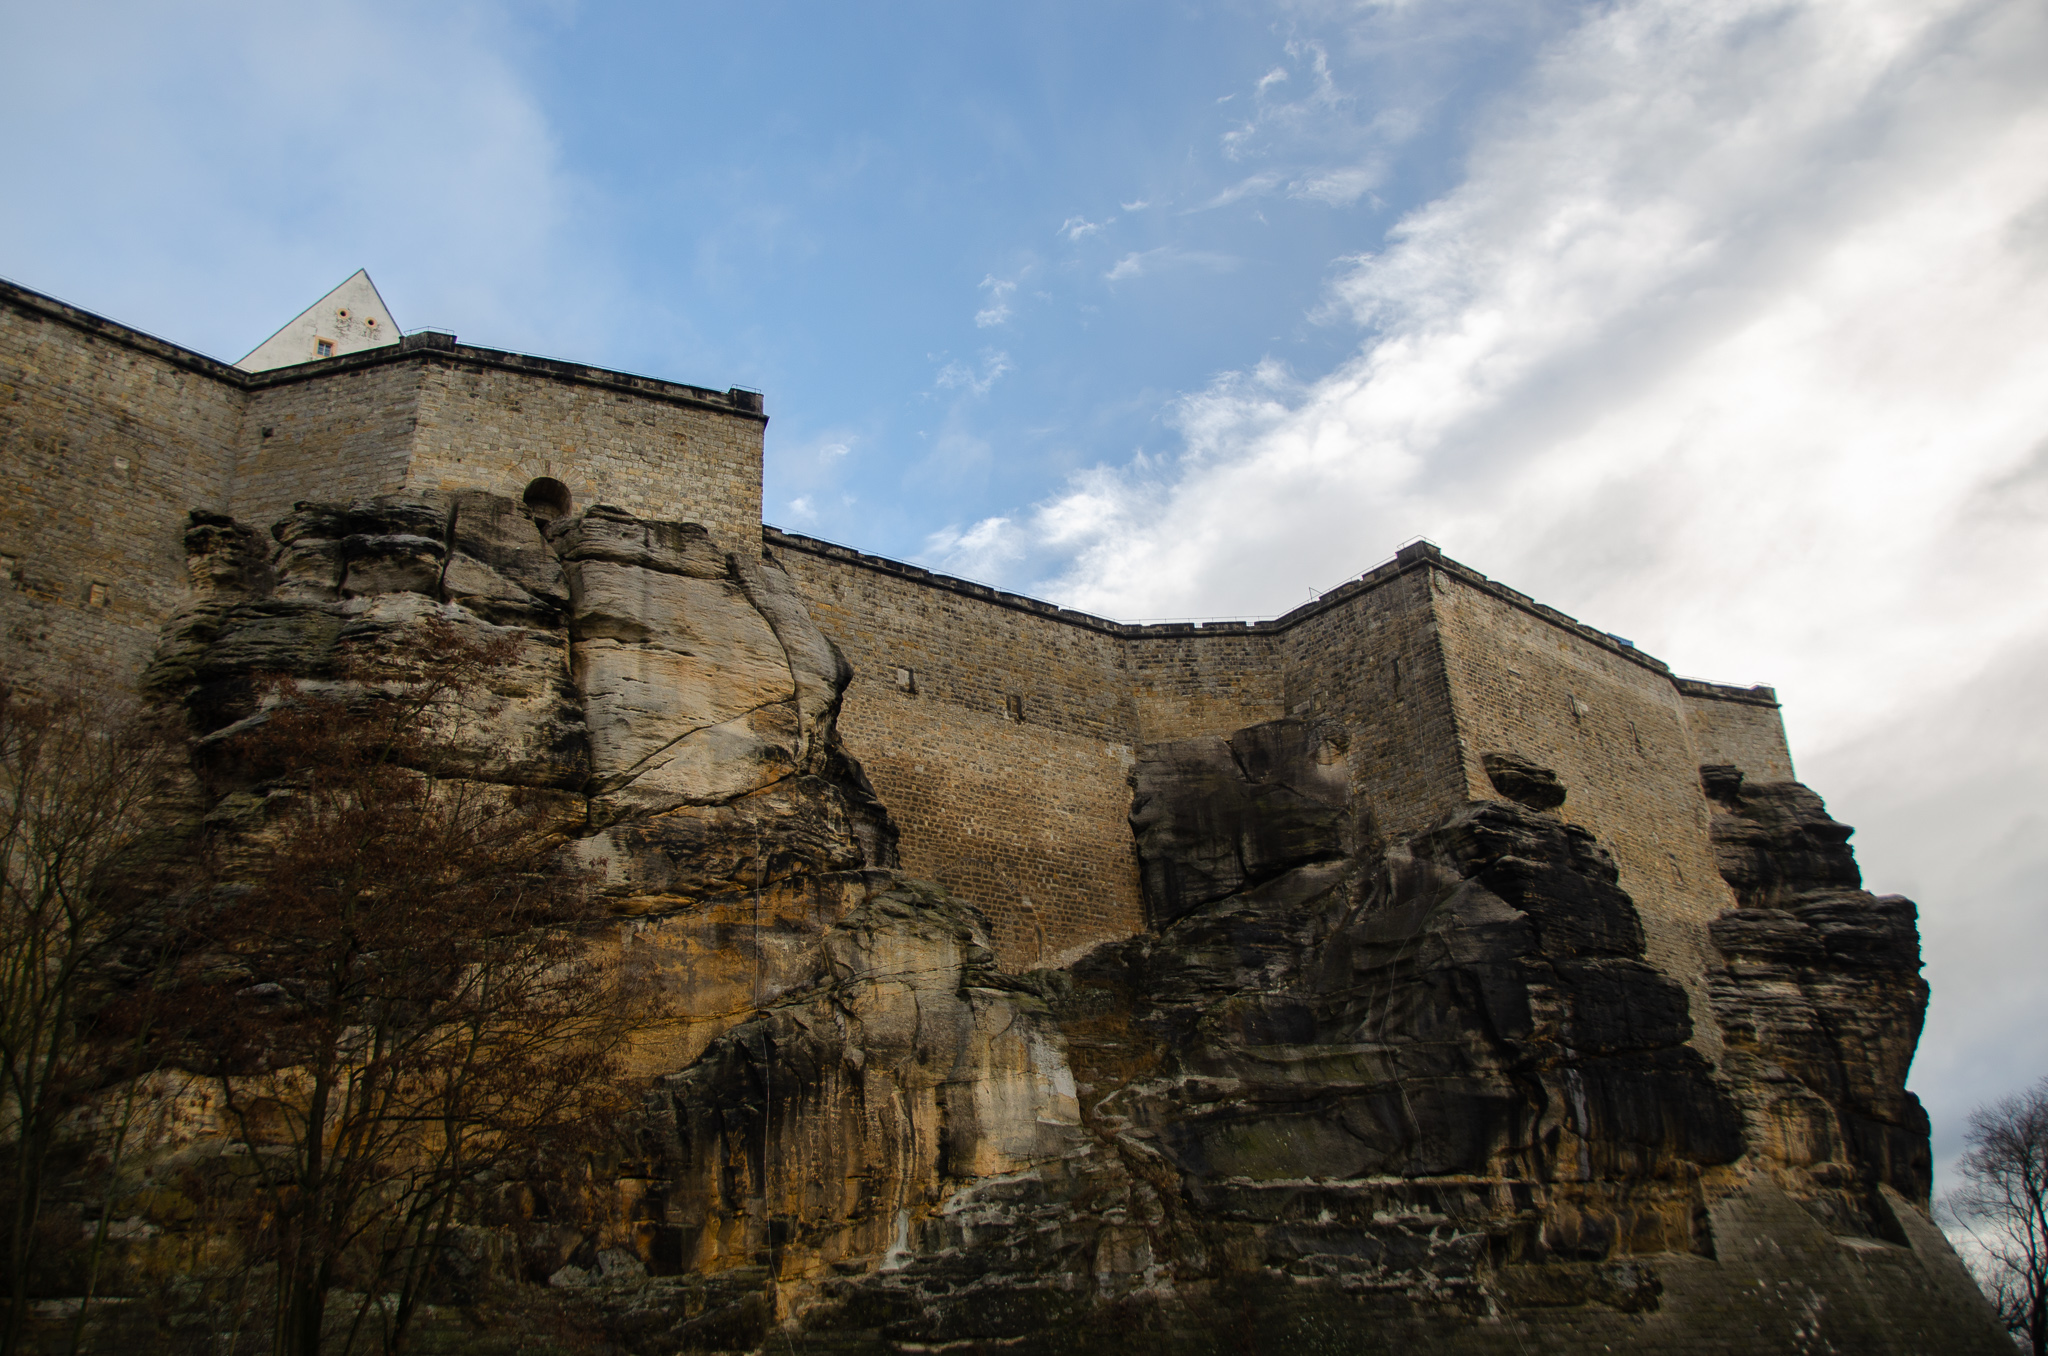 Looking up at the fortress, on our ascent up from Königstein